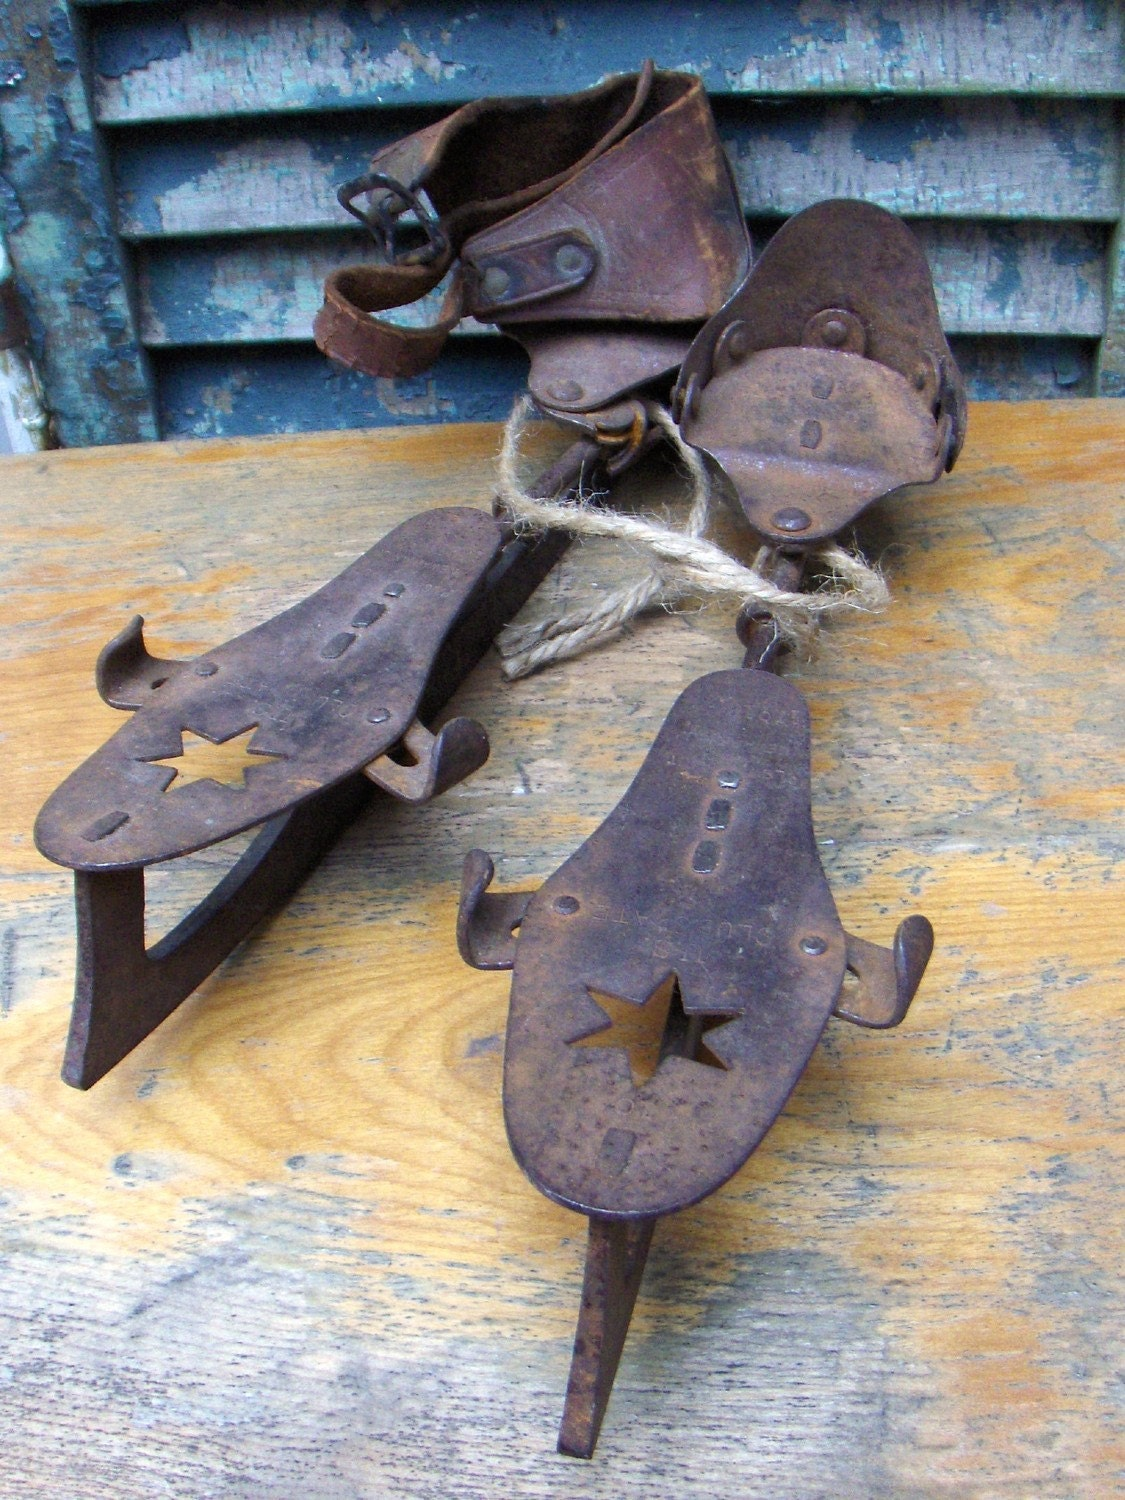 Antique Ice Skates Us Club Skate By Convergedcommodities